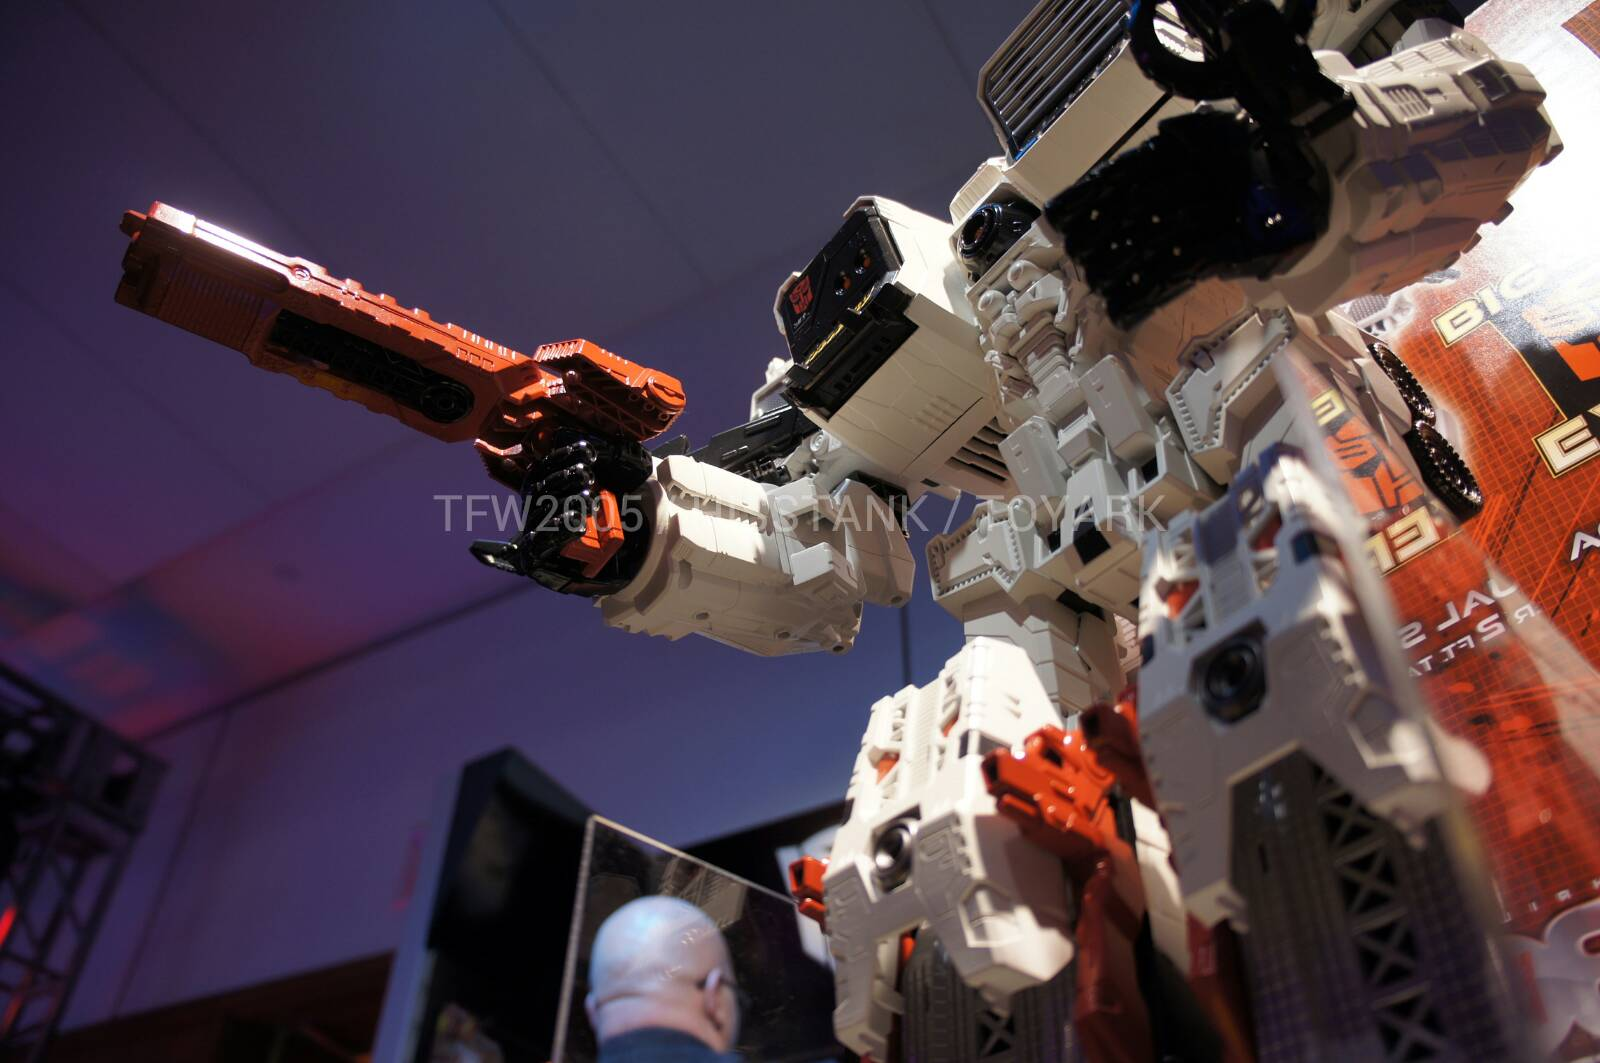 Transformers-Metroplex-Toy-Fair-2013-040